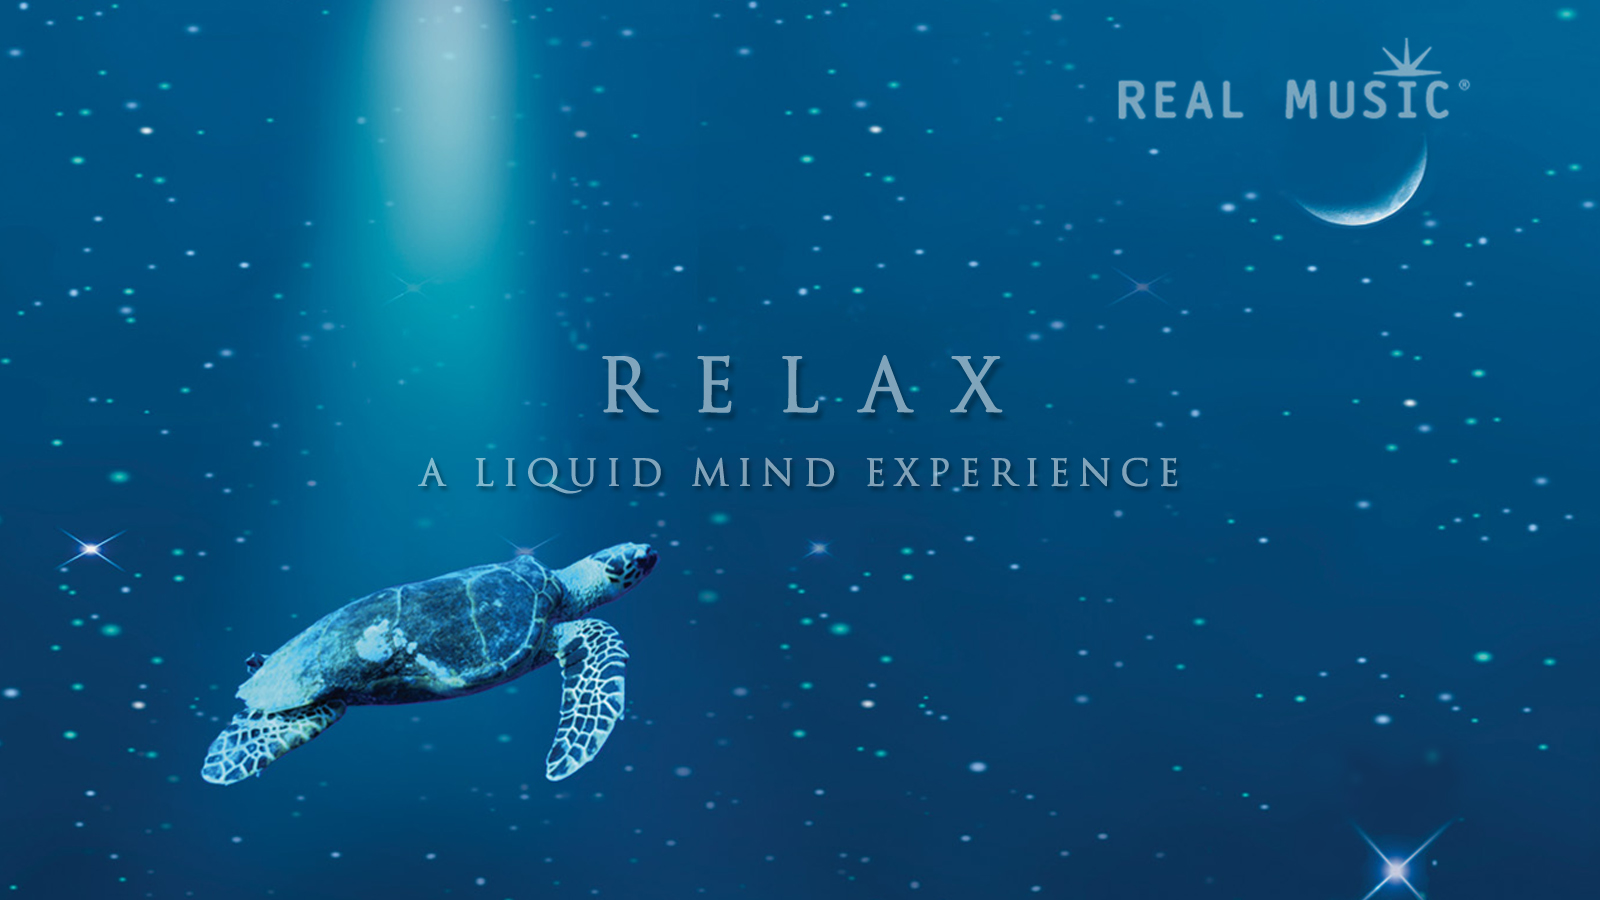 Liquid Mind Chuck Wild Relaxation Music Free Wallpapers